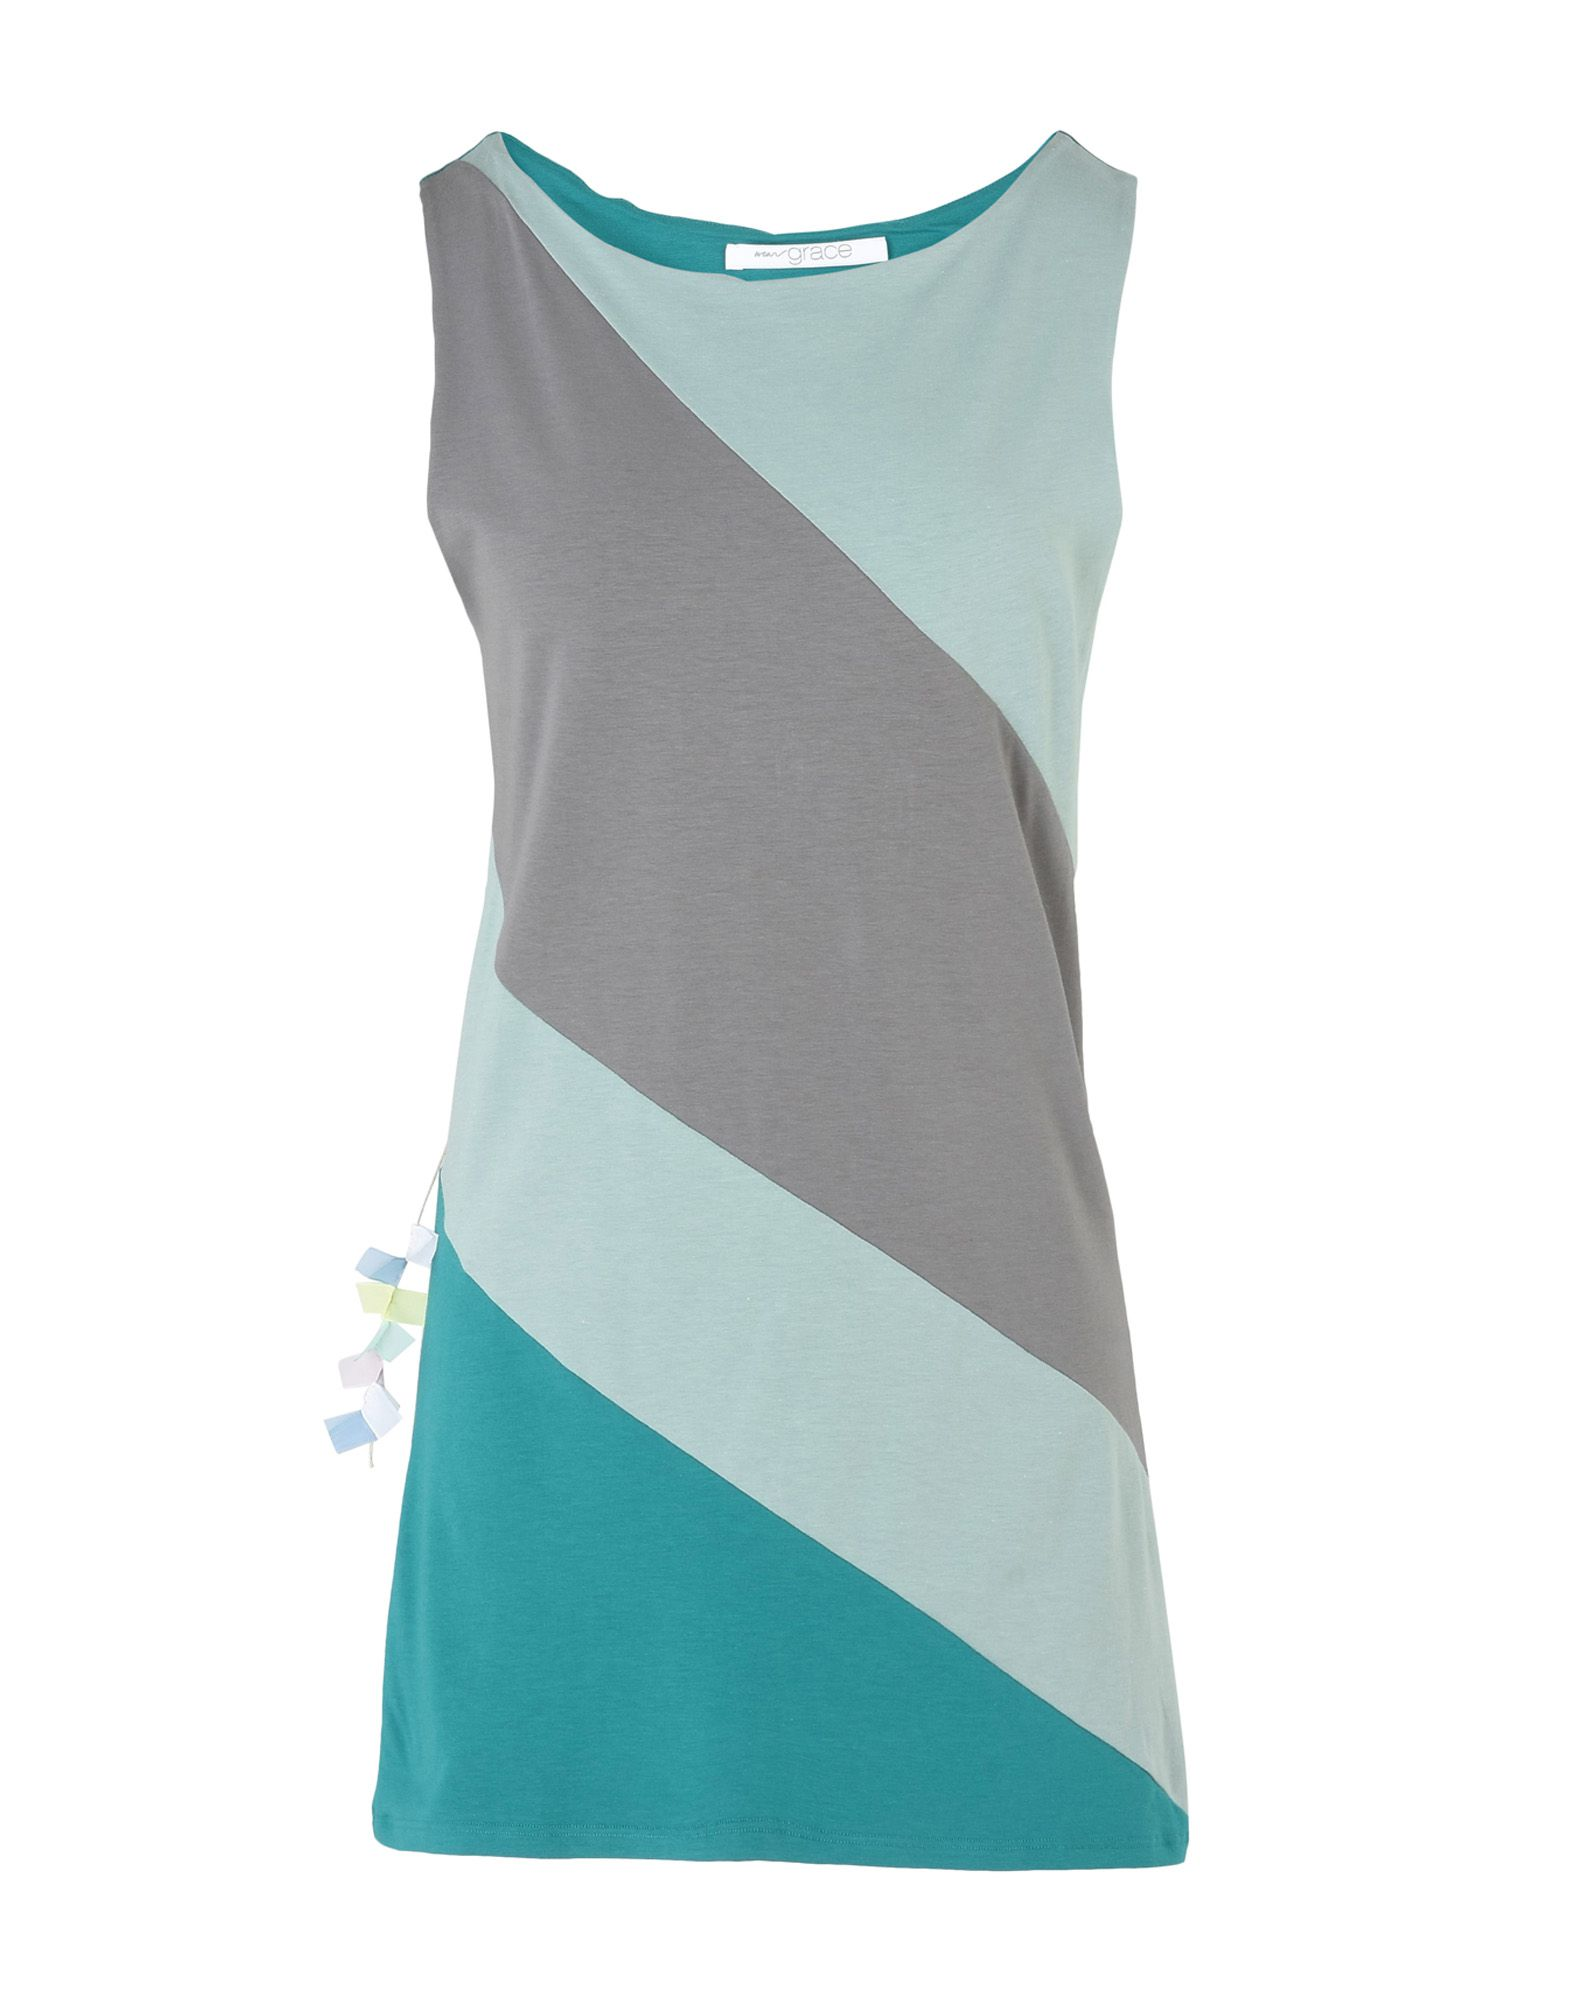 WEARGRACE Sports Bras And Performance Tops in Grey